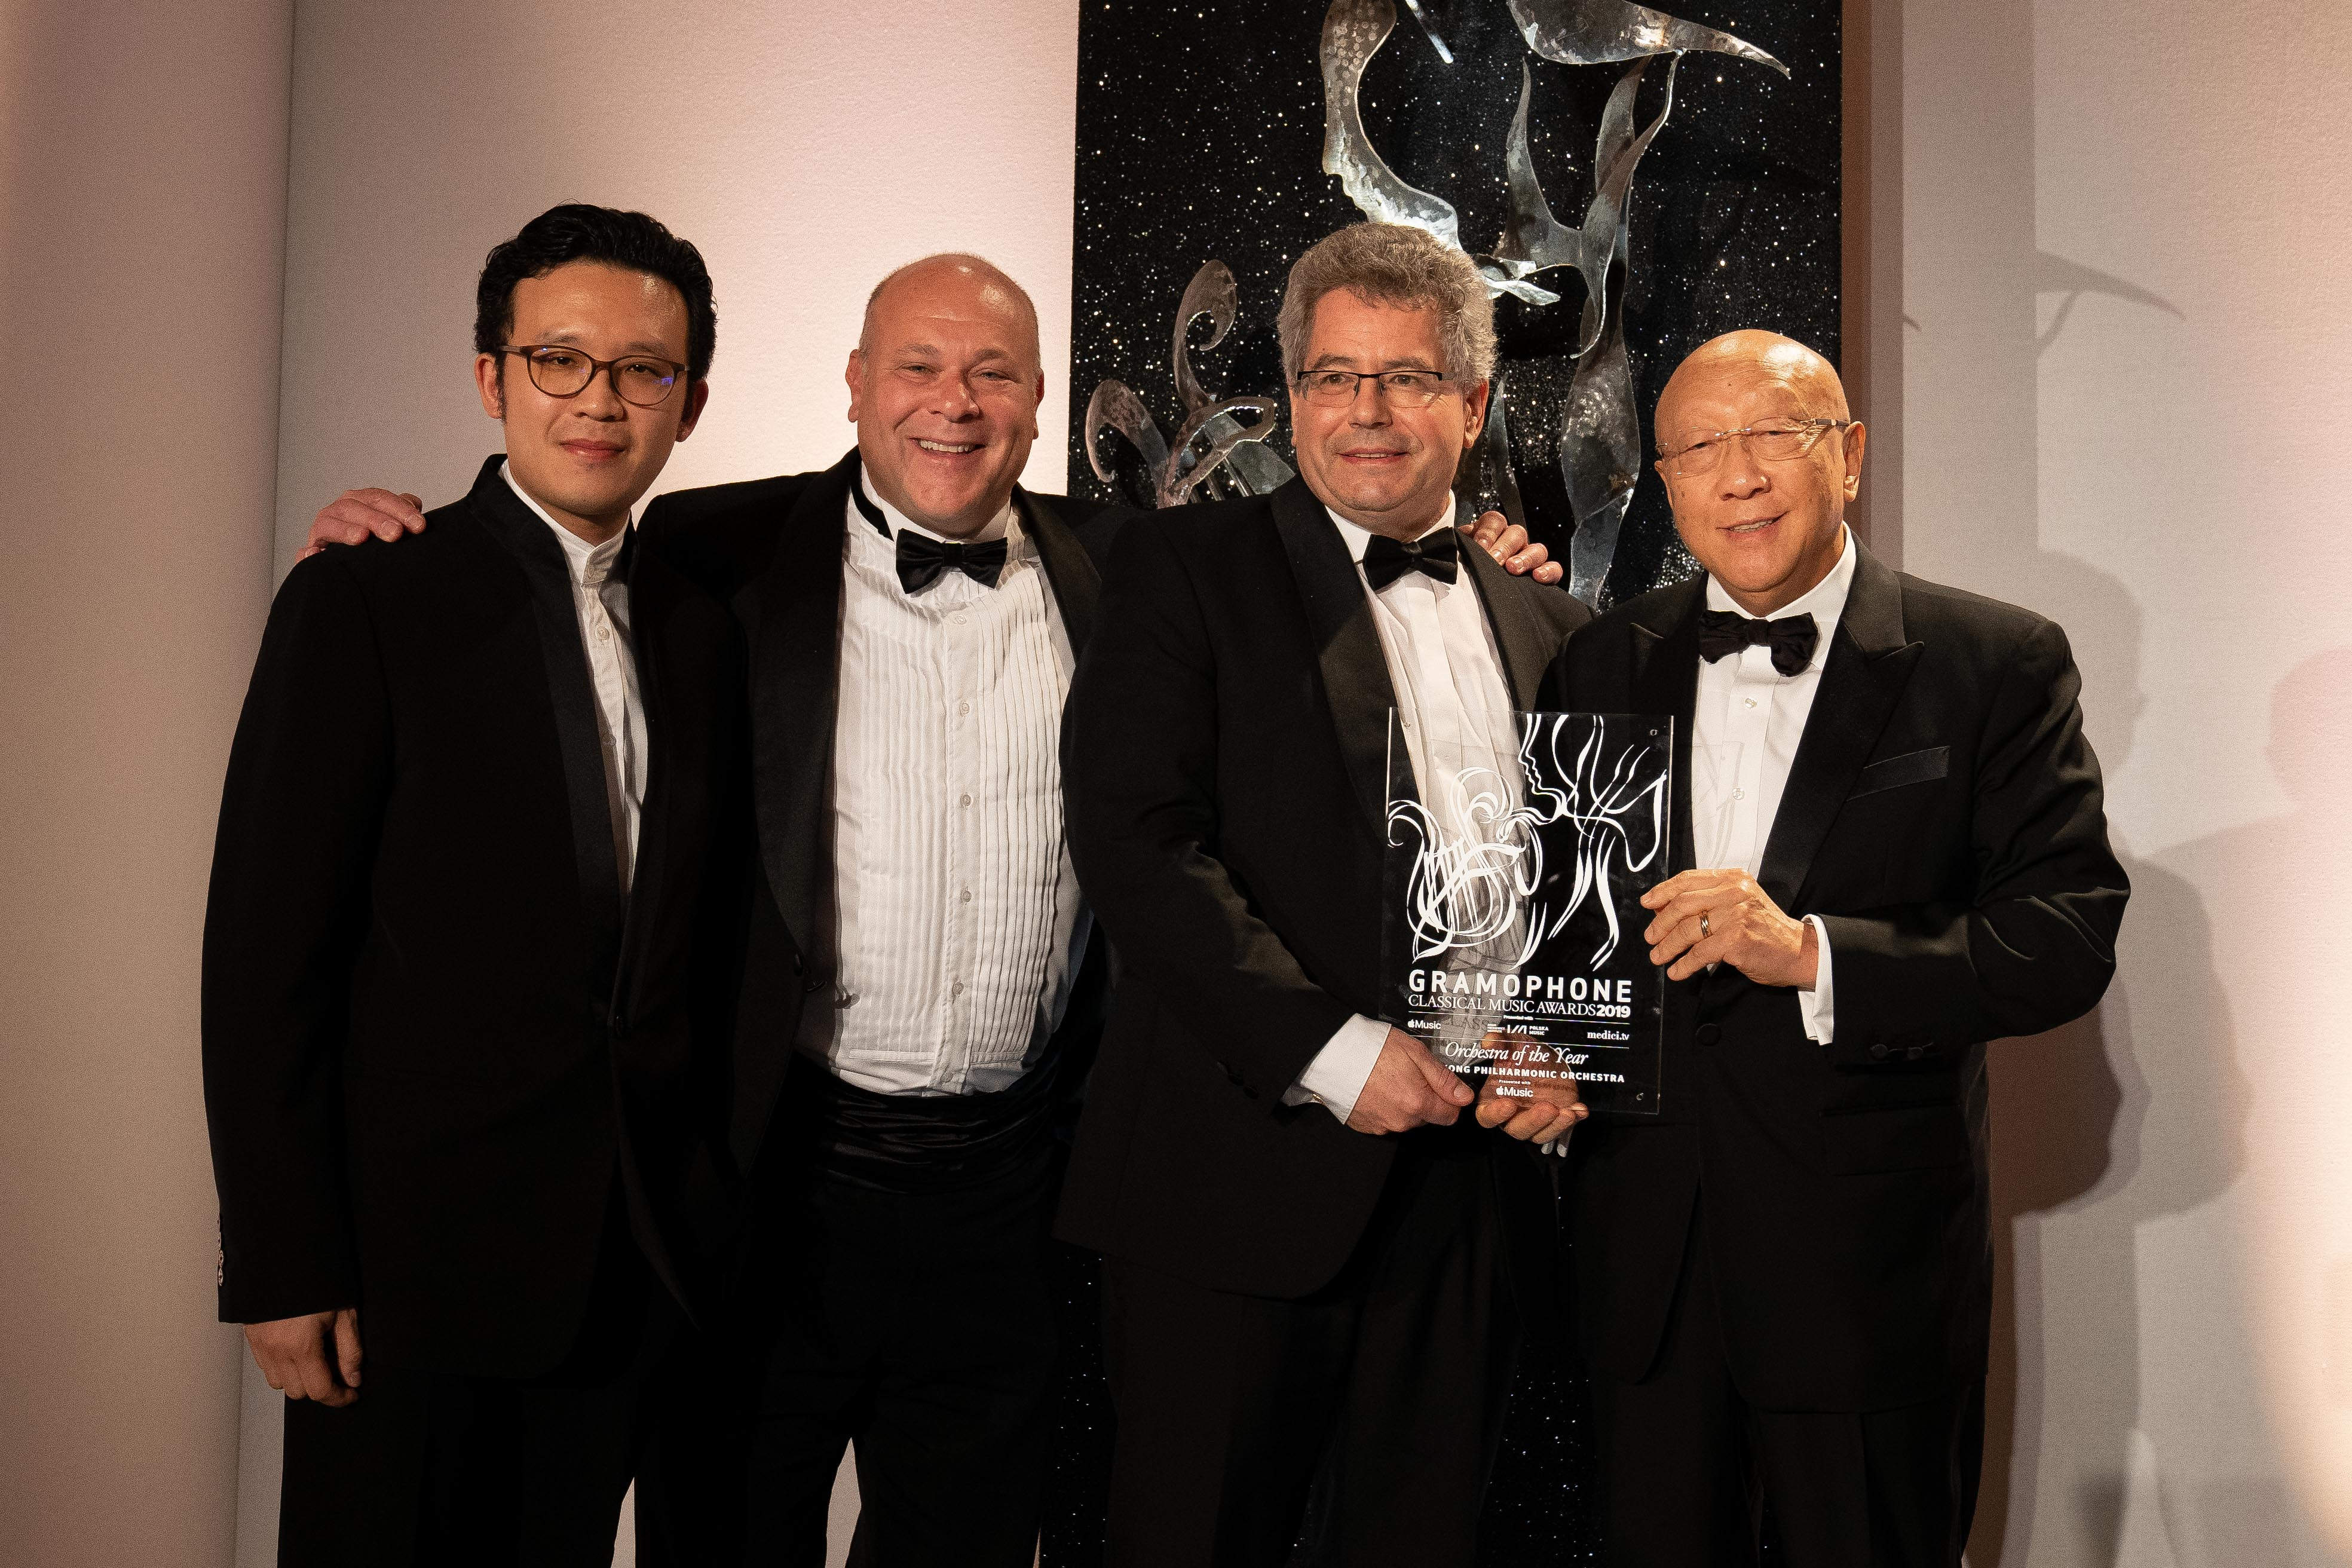 The Hong Kong Philharmonic Orchestra wins Gramophone's Orchestra of the Year Award, voted for by the public